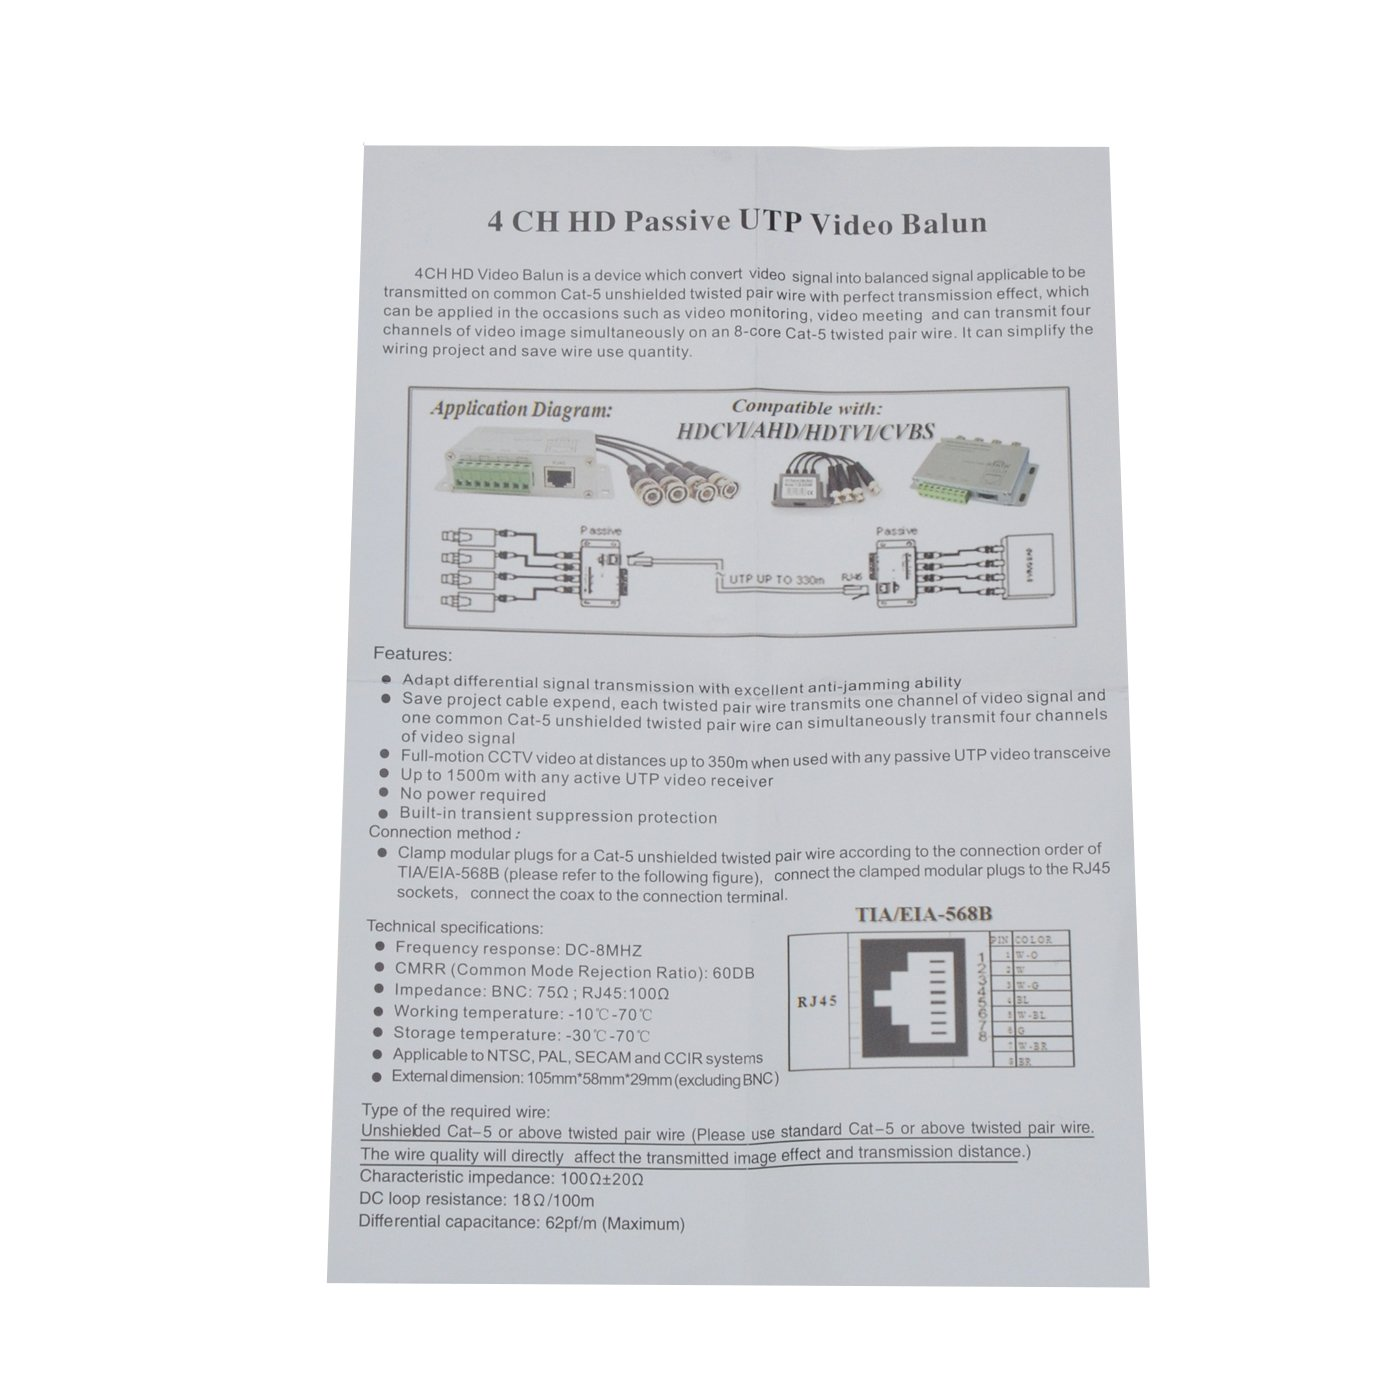 Funky Standard Cat5 Wiring Diagram Mold - Electrical System Block ...